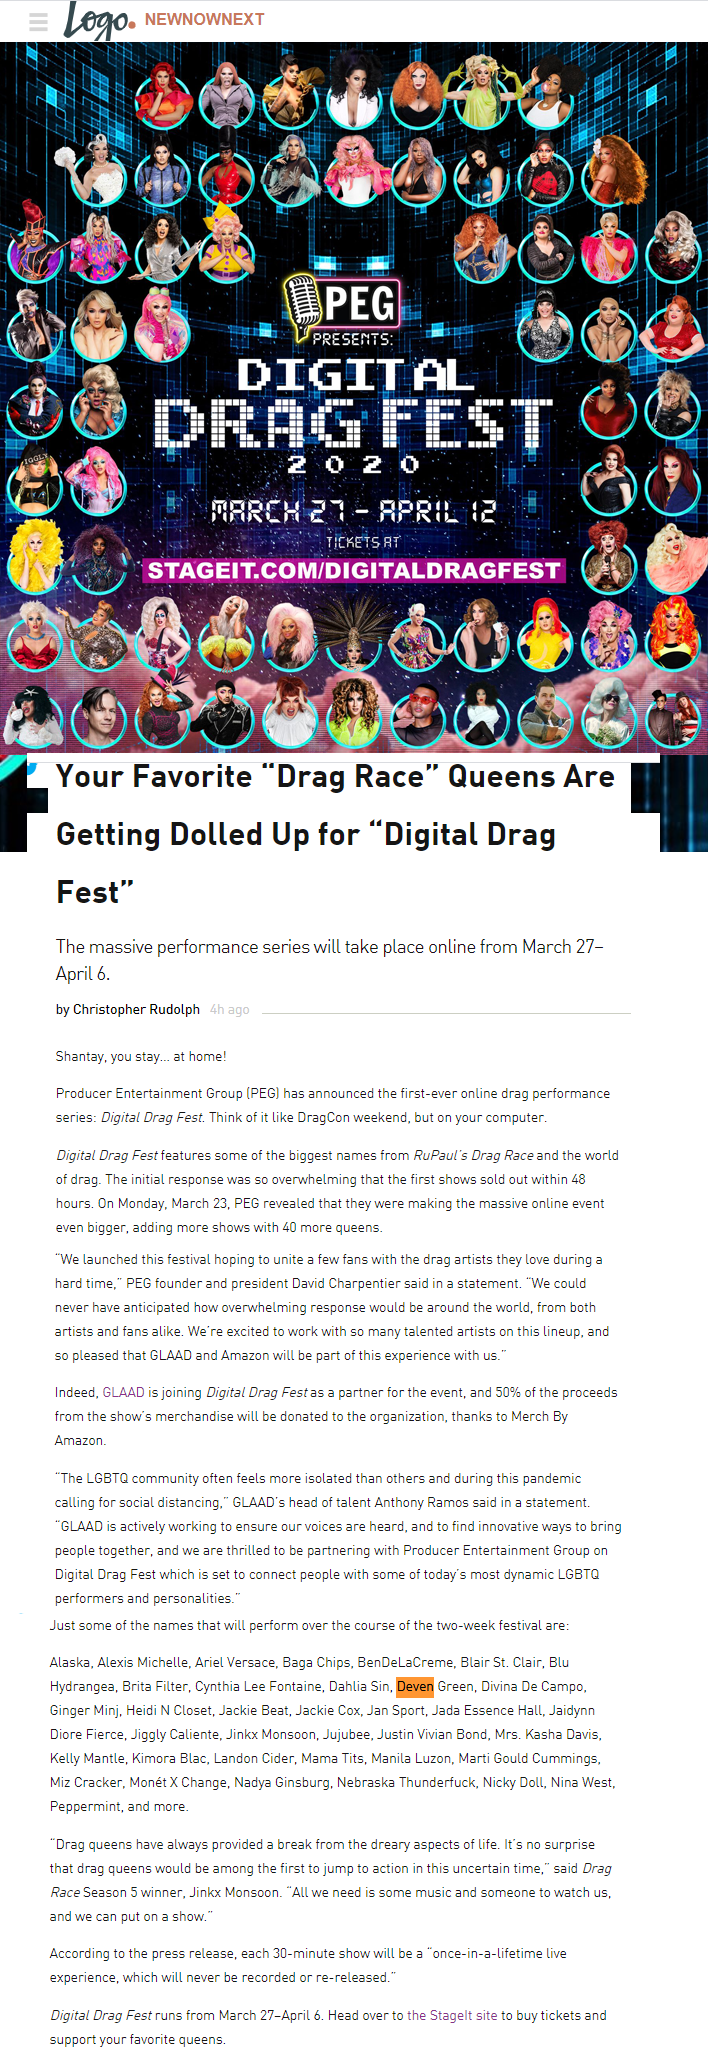 digital drag fest march 2020 deven peg e